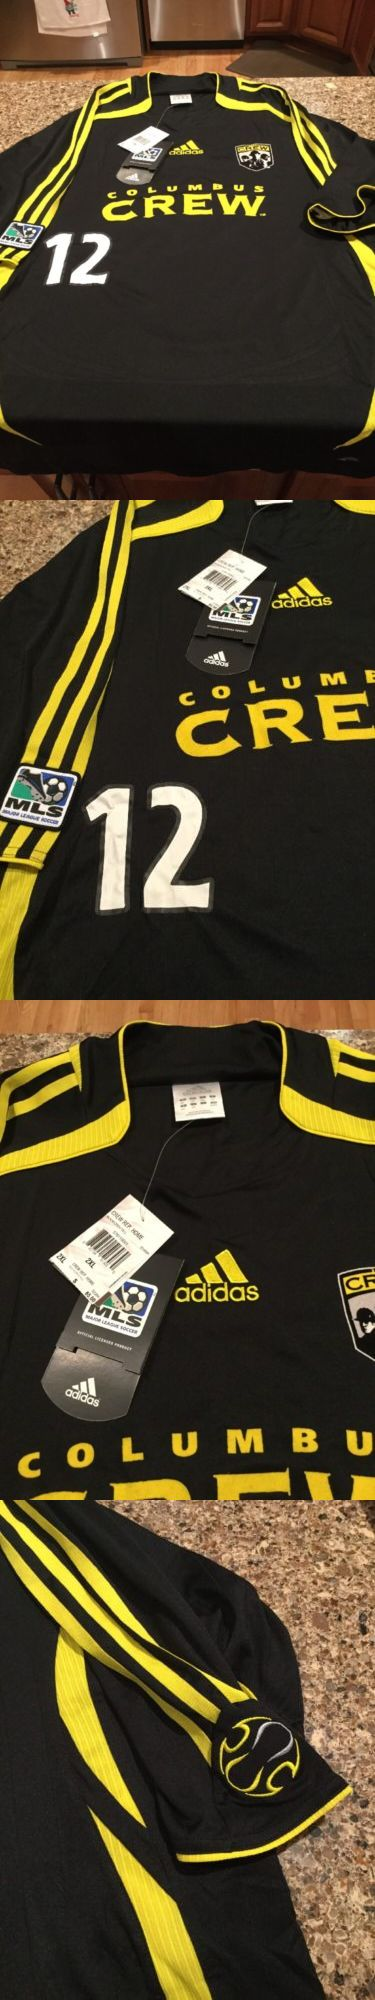 Soccer-Other 2885: Brand New Adidas Colombia Crew Gaven Soccer Jersey Xxl 2Xl -> BUY IT NOW ONLY: $49.99 on eBay!